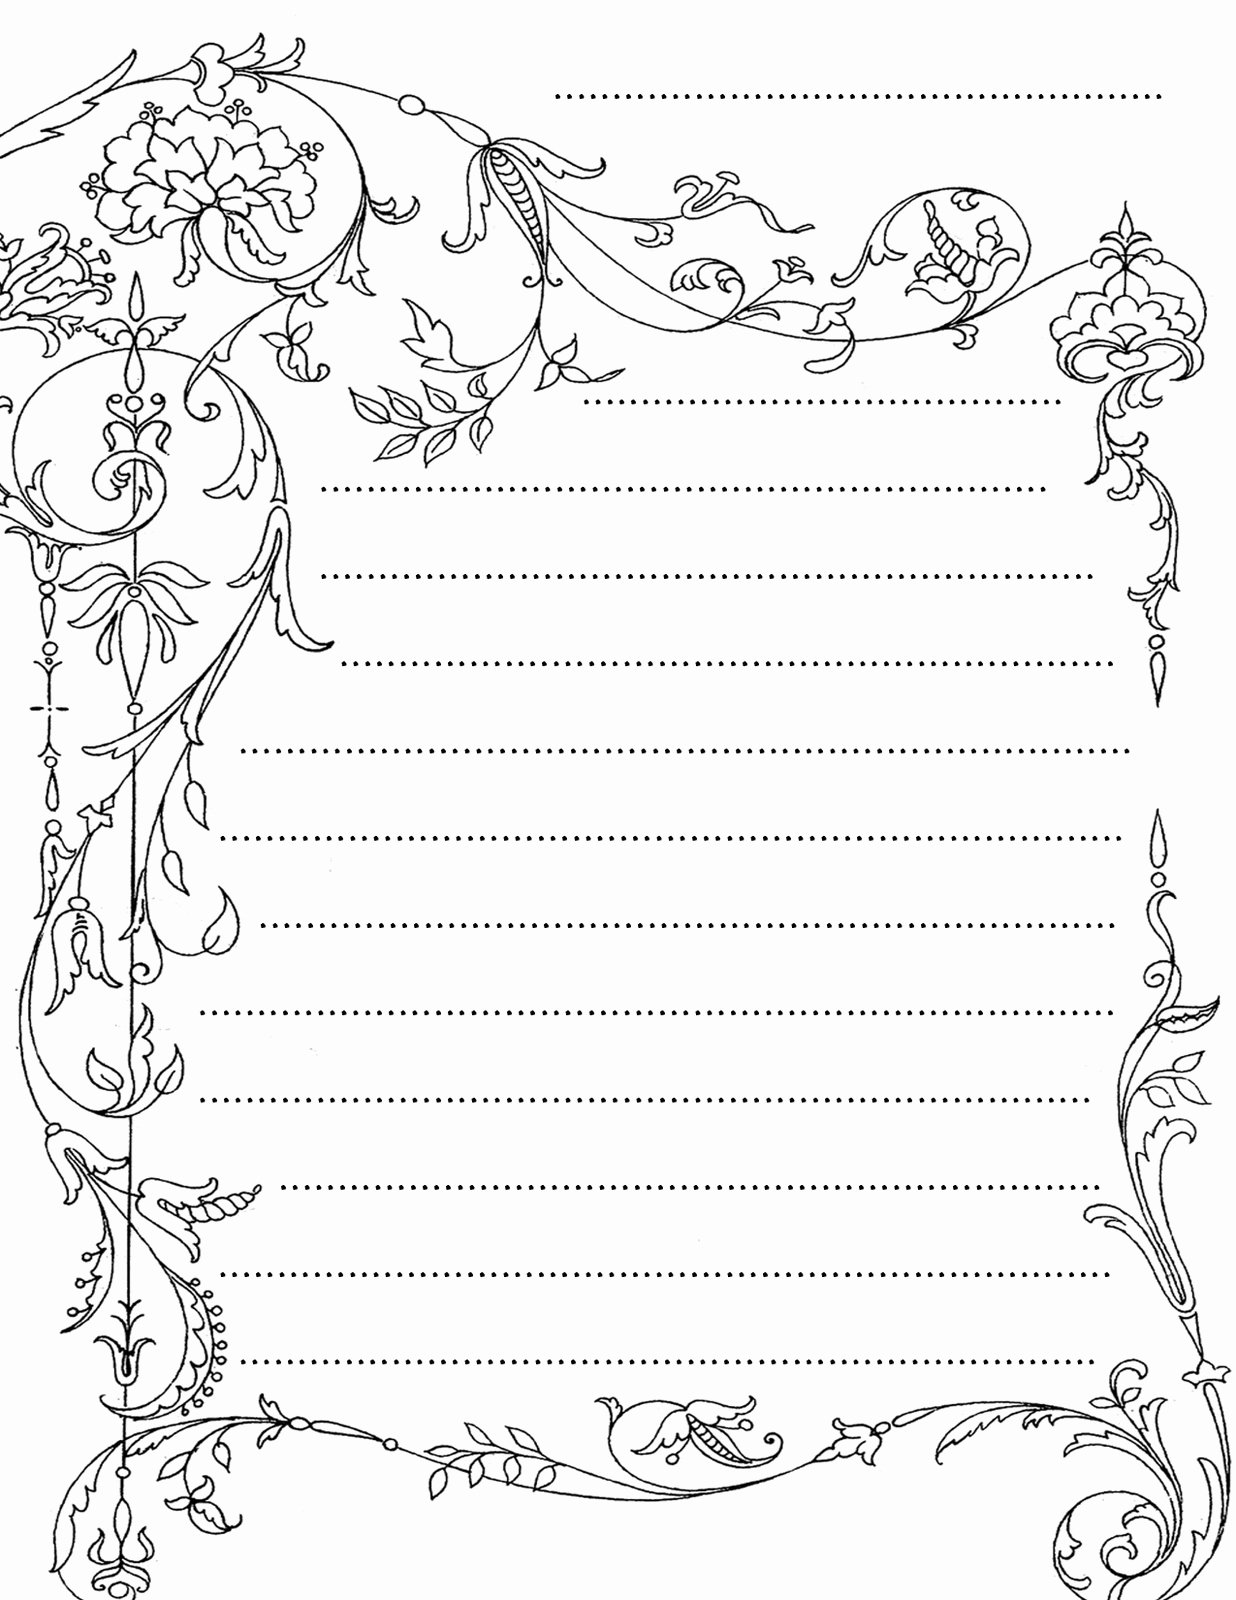 Printable Lined Stationery Paper Fresh Christmas Border Lined Paper Writing